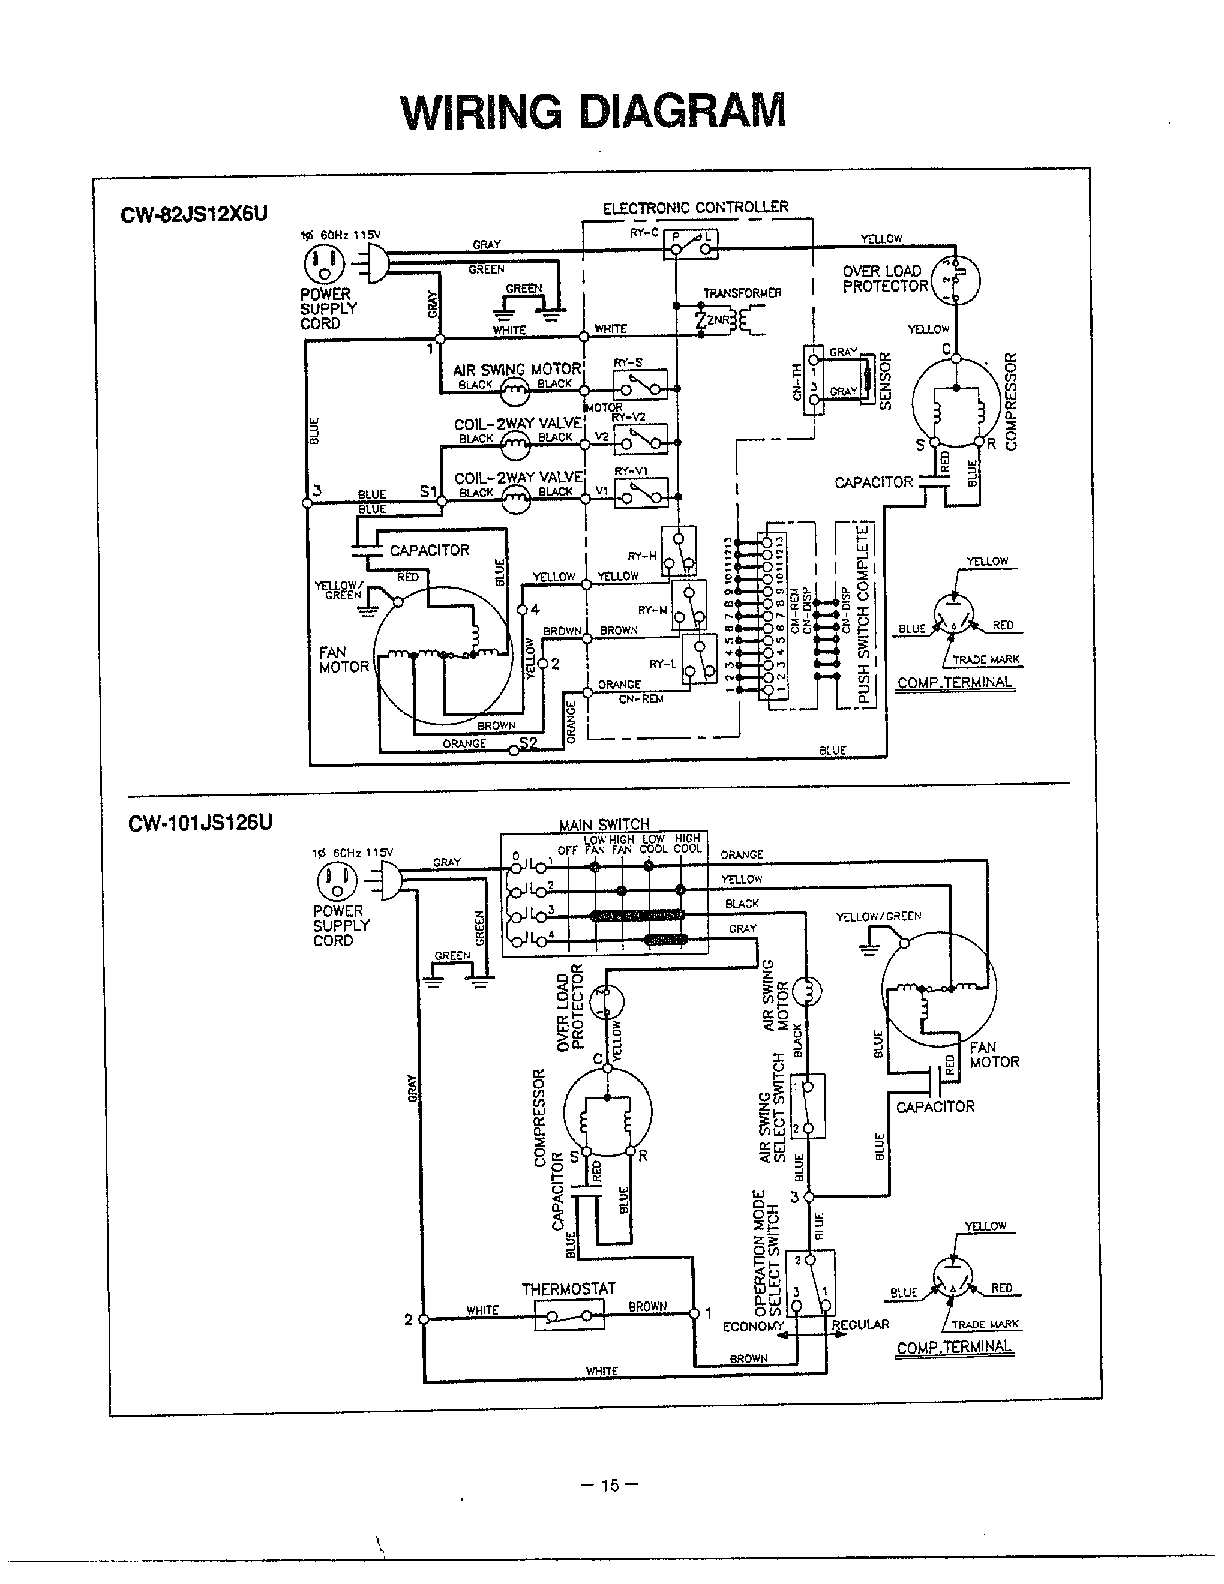 WA001443 00015?resize=665%2C861 pana pacific radio harness wiring diagram kenworth oldsmobile pana pacific wiring diagram at bakdesigns.co